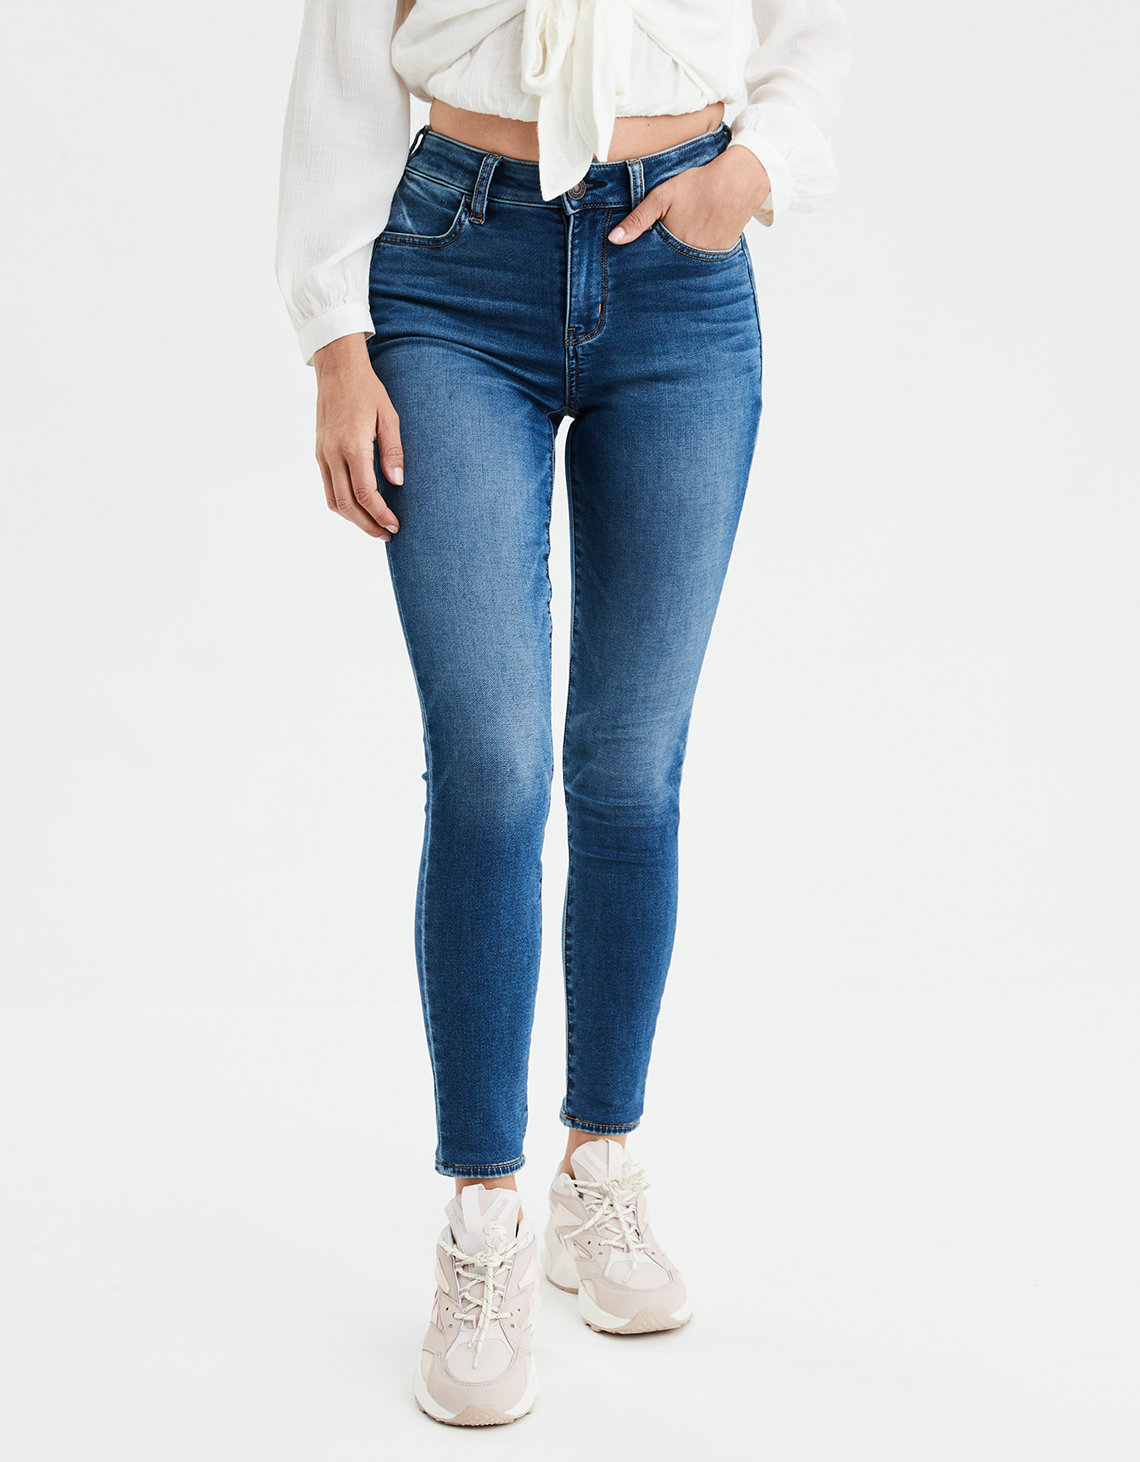 Ae Ne(X)T Level Super Soft High Waisted Jegging by American Eagle Outfitters